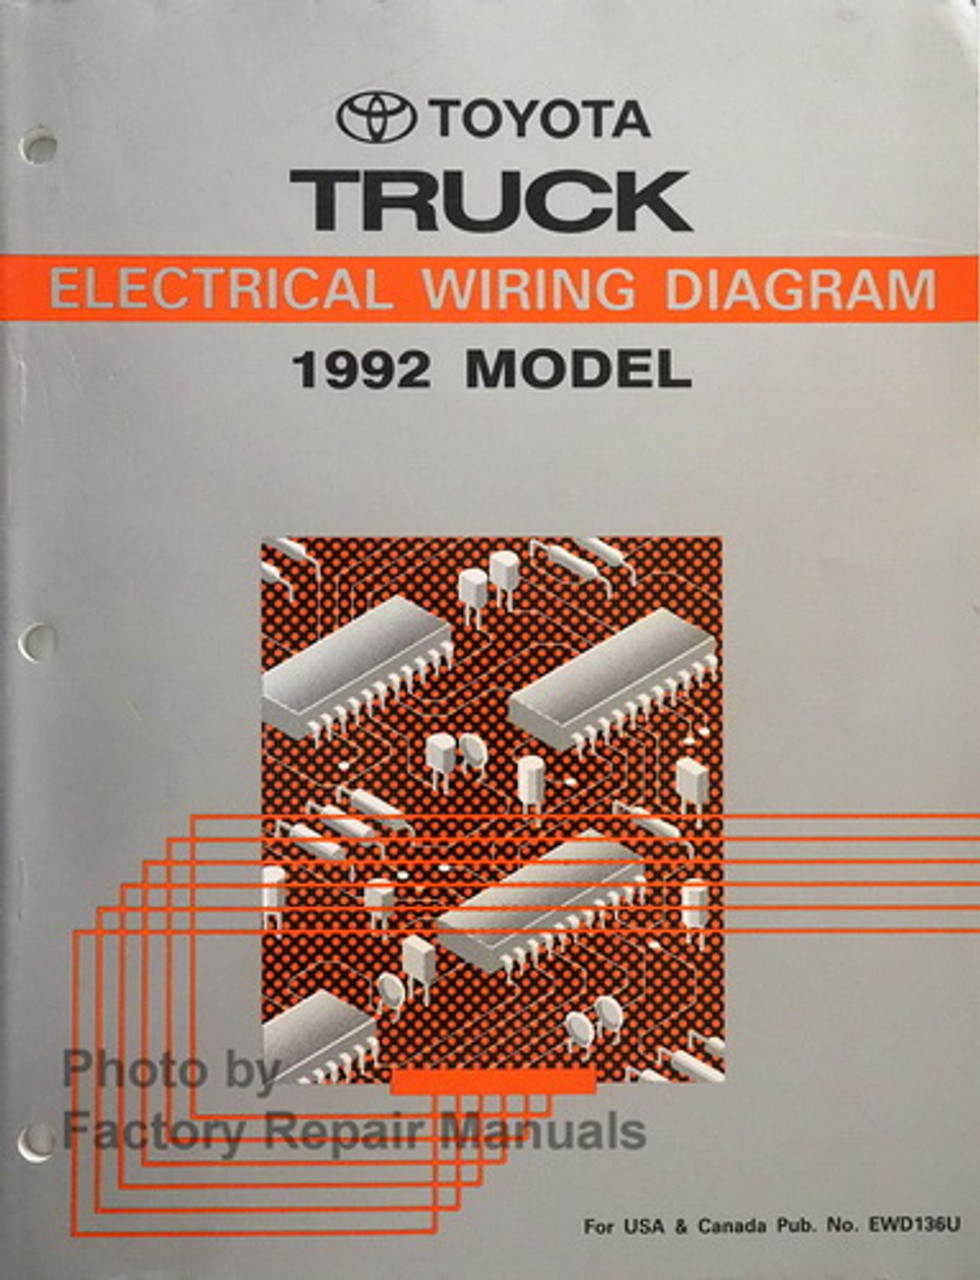 Truck Wiring Diagram 1941 Ford Wiring Diagram 1950 Ford Wiring Diagram